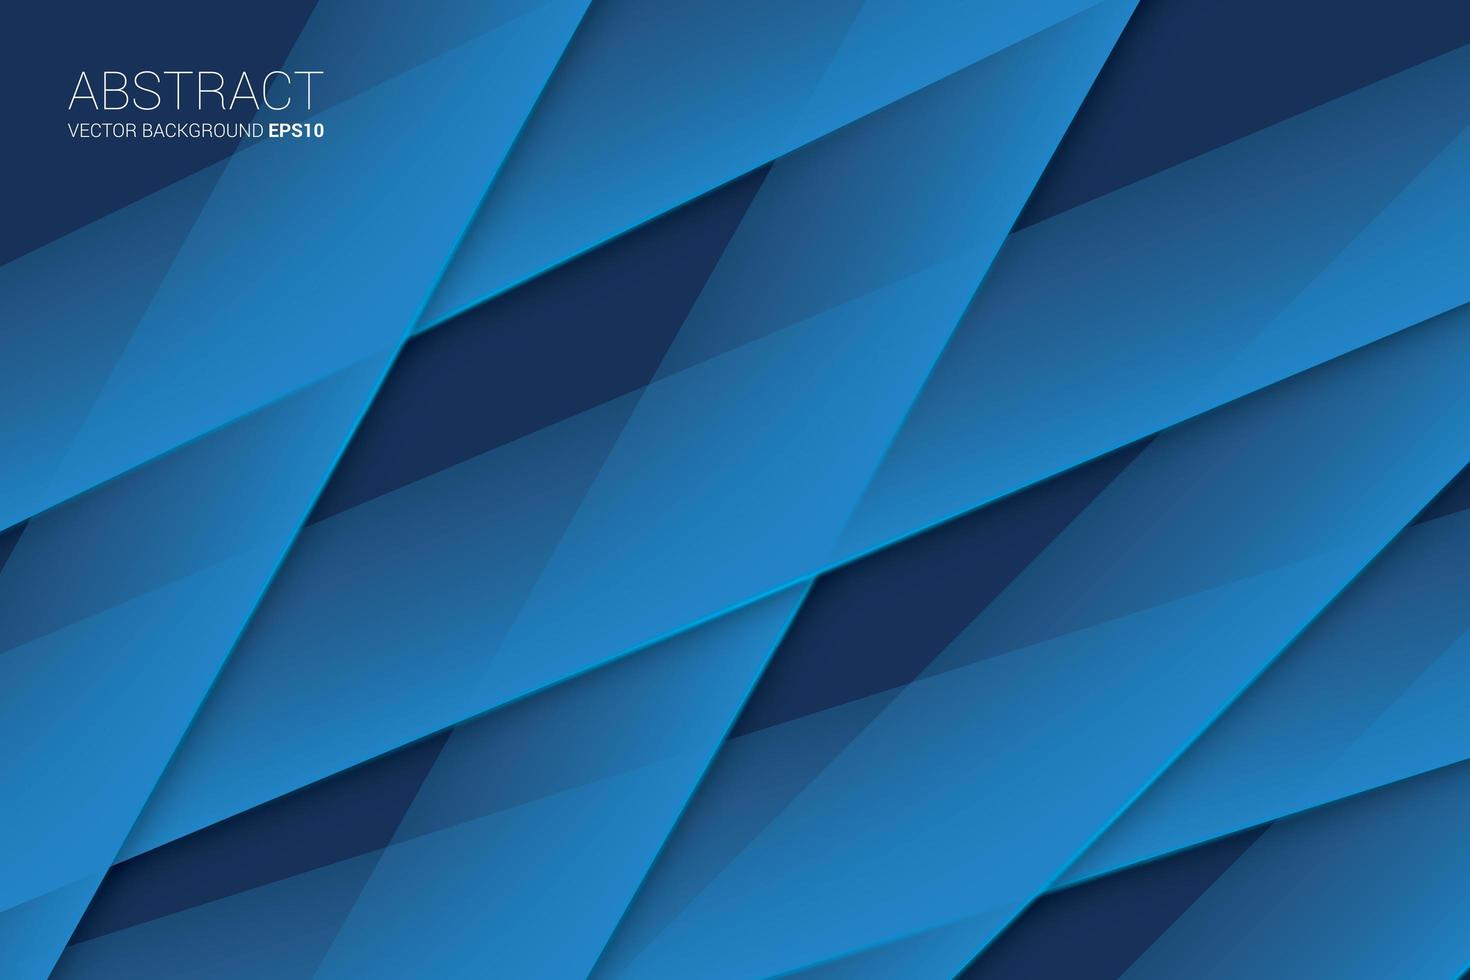 abstract thick criss cross strip background with blue color download free vectors clipart graphics vector art abstract thick criss cross strip